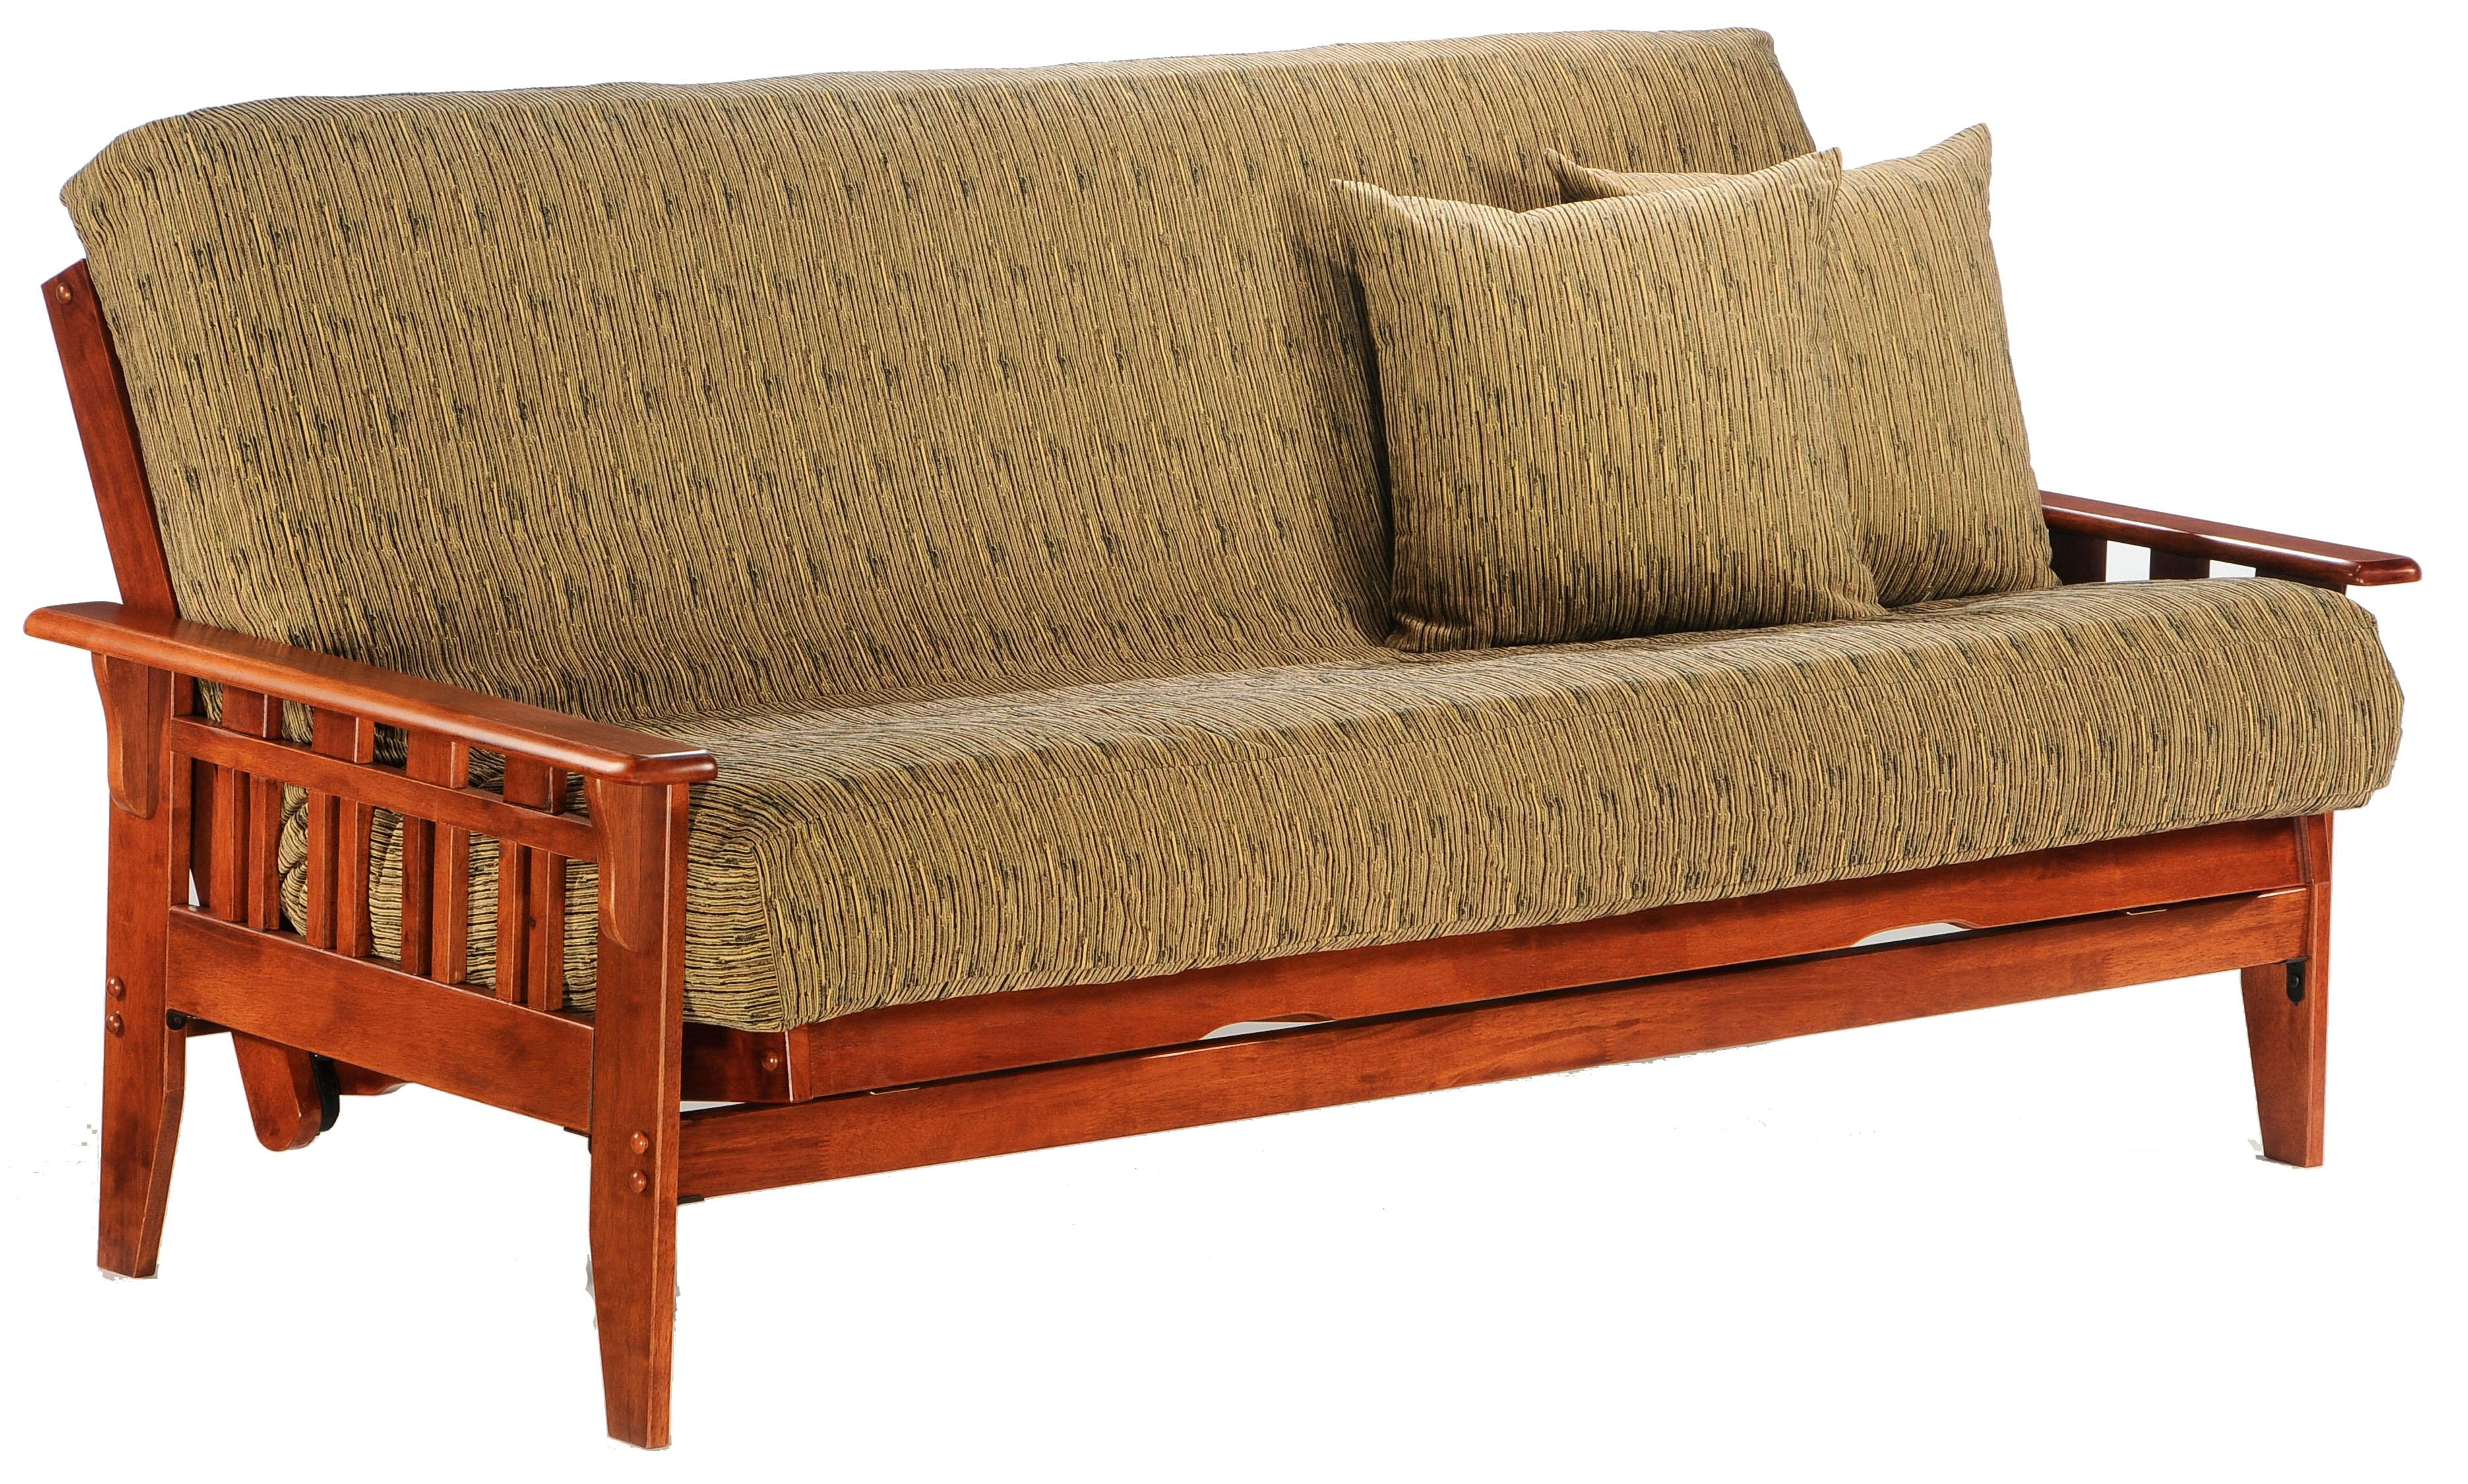 Night Day Furniture Kingston Dark Cherry Chair Size Futon And Liancemart